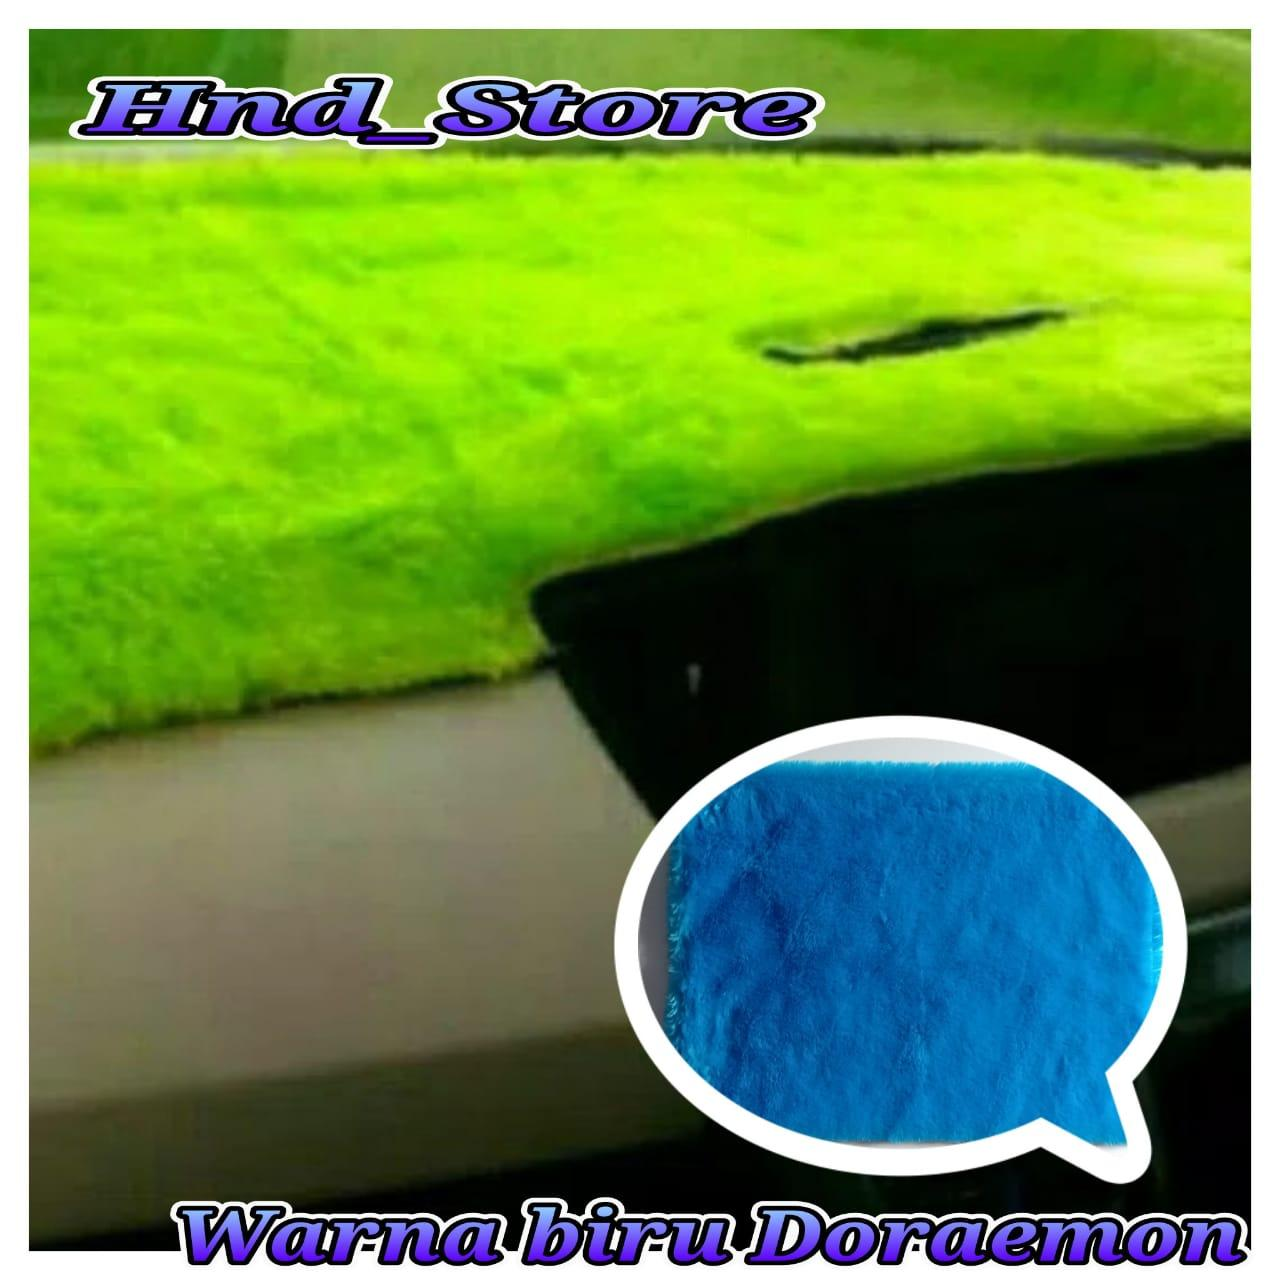 COVER BULU DASHBOARD MOBIL (WARNA BIRU LAUT)